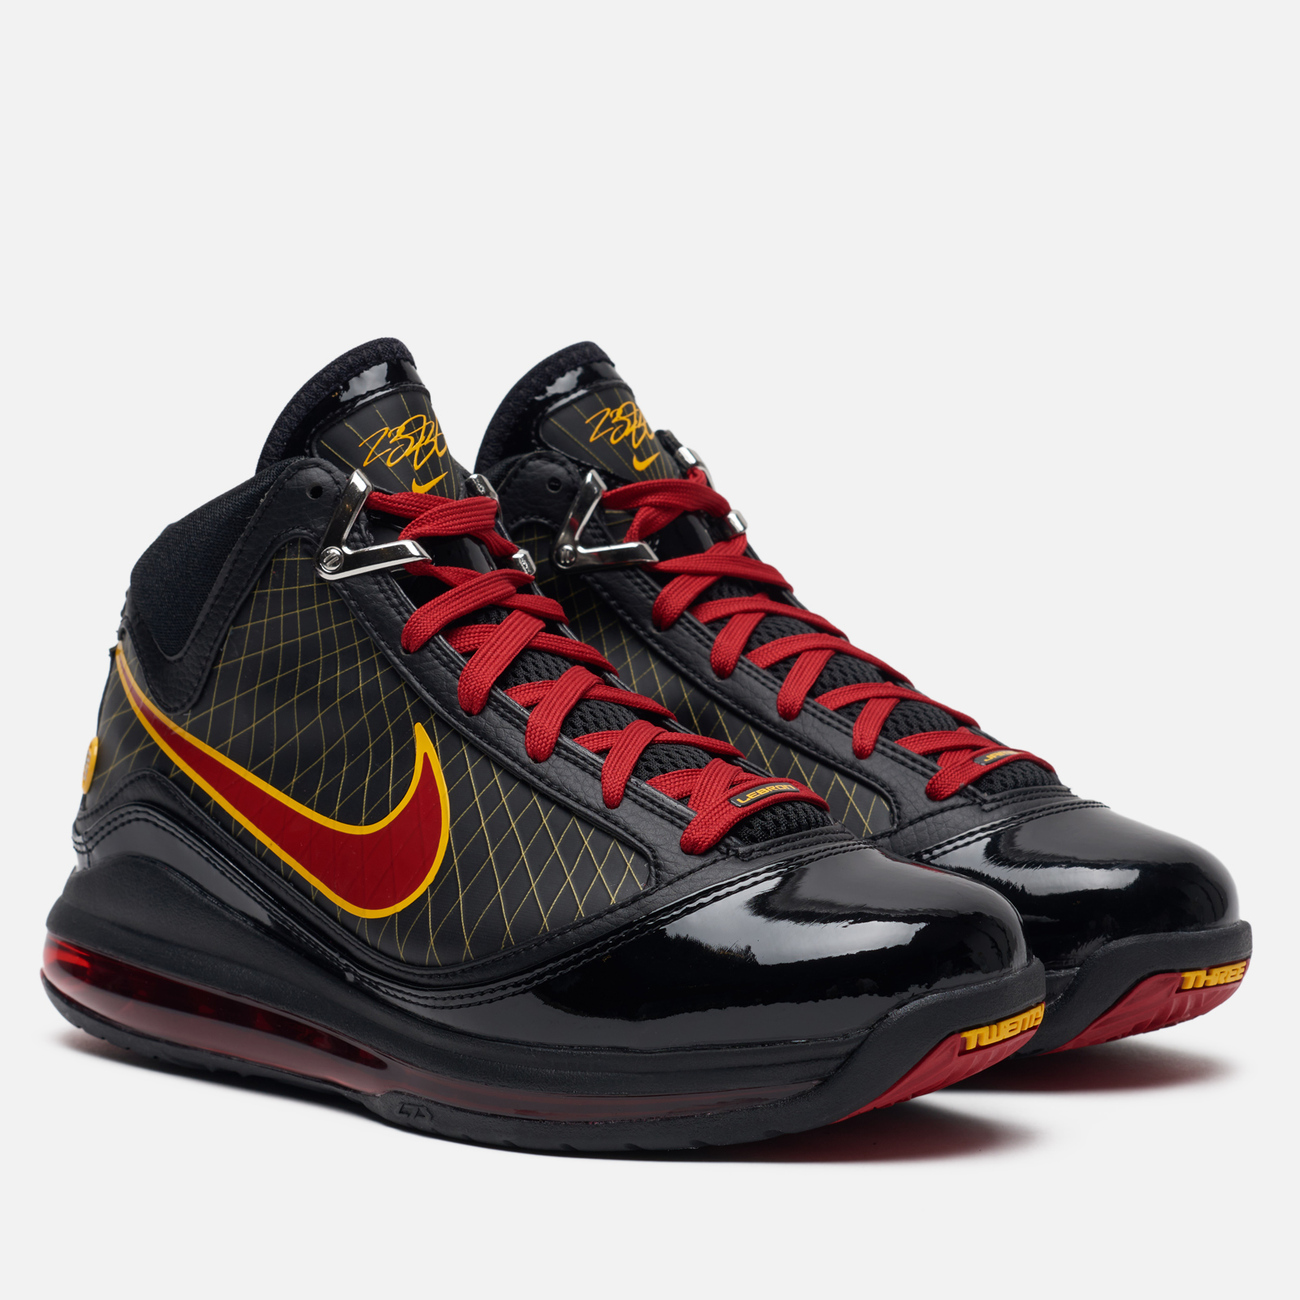 Мужские кроссовки Nike Lebron VII QS Fairfax Away Black/Varsity Red/Varsity Maize